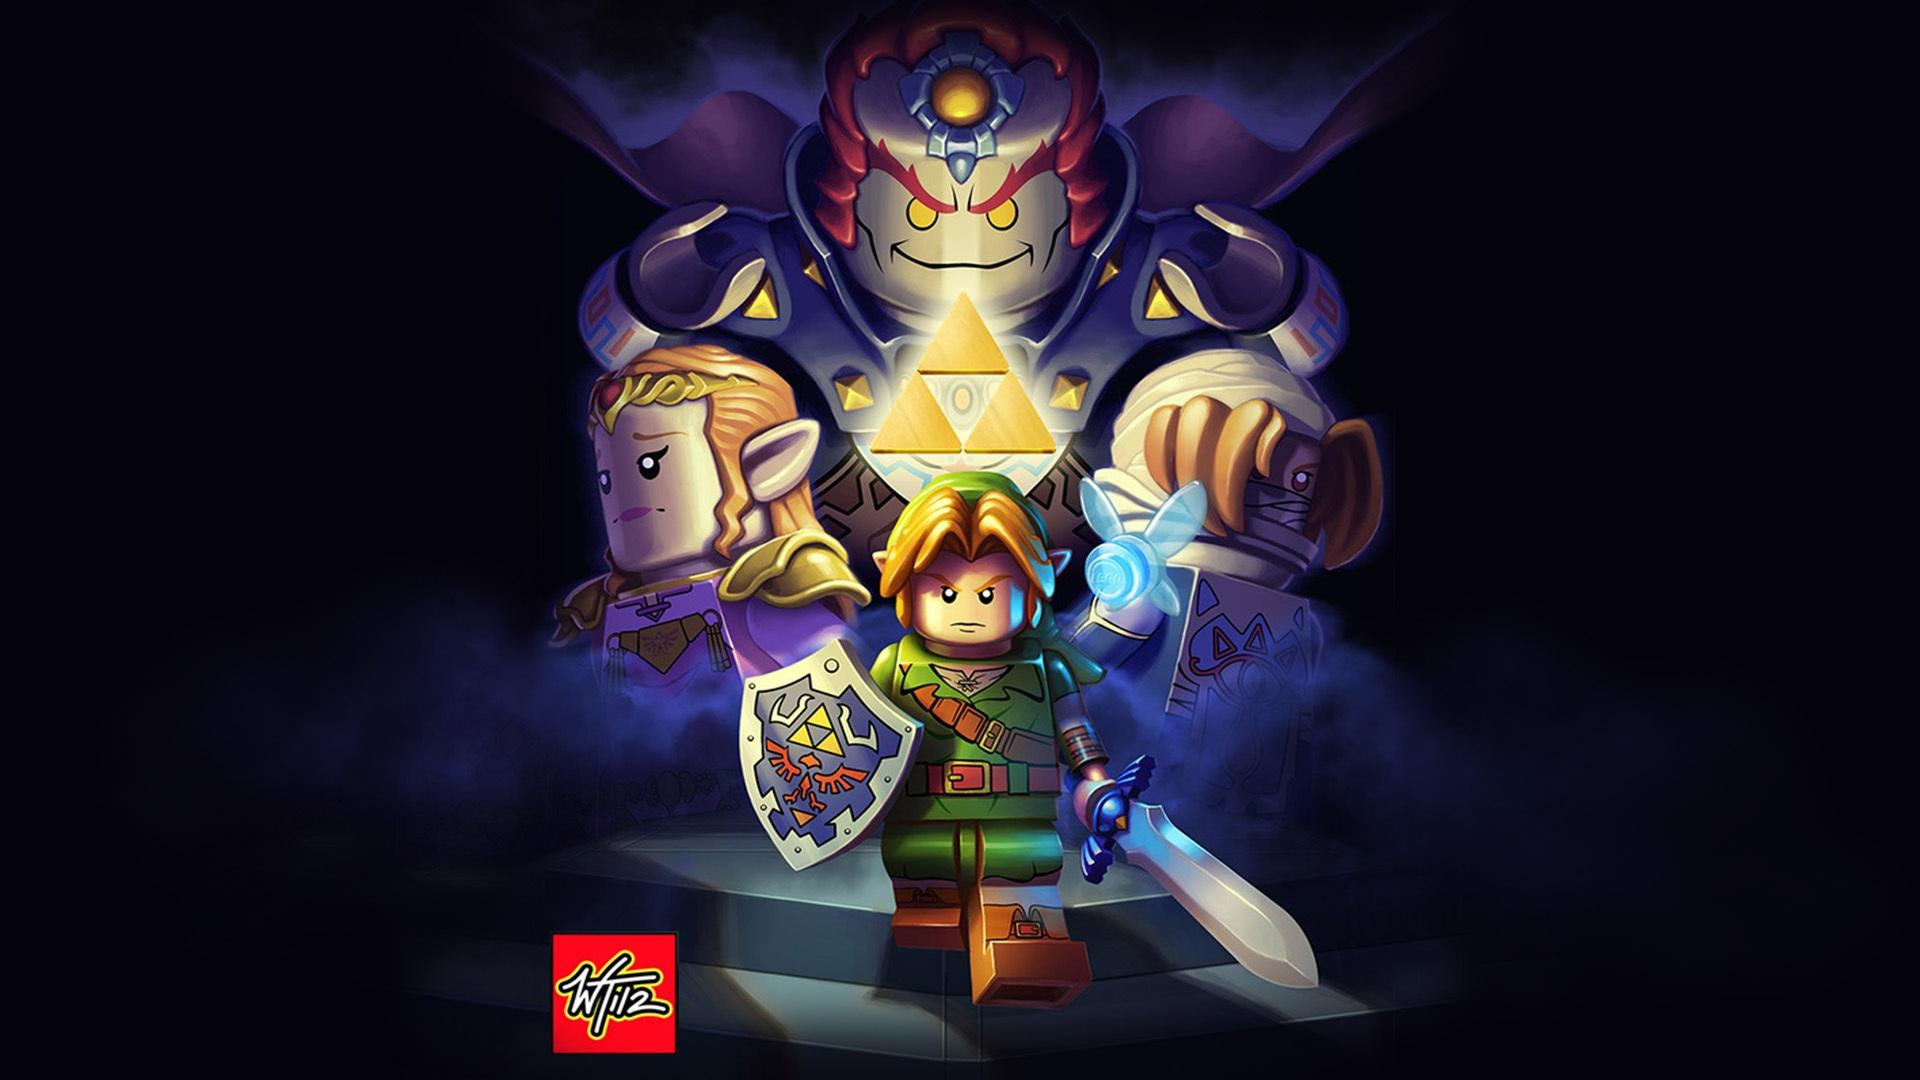 Legend Of Zelda 19201080 Wallpaper 1920x1080